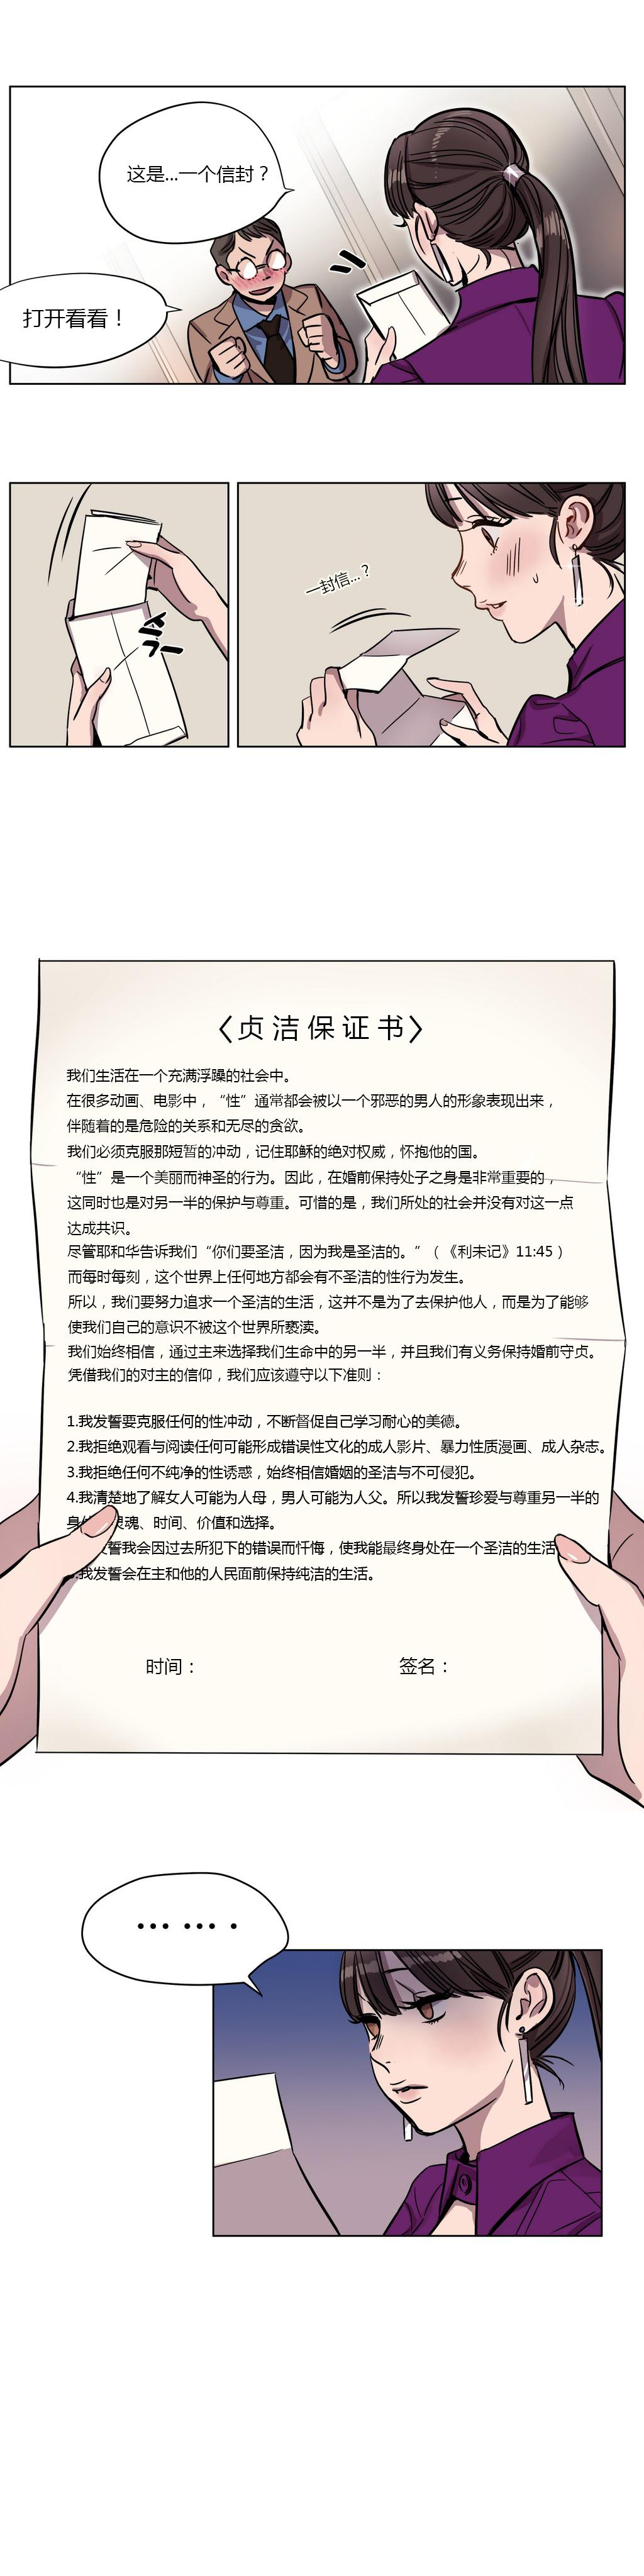 Atonement Camp Ch.0-36 43